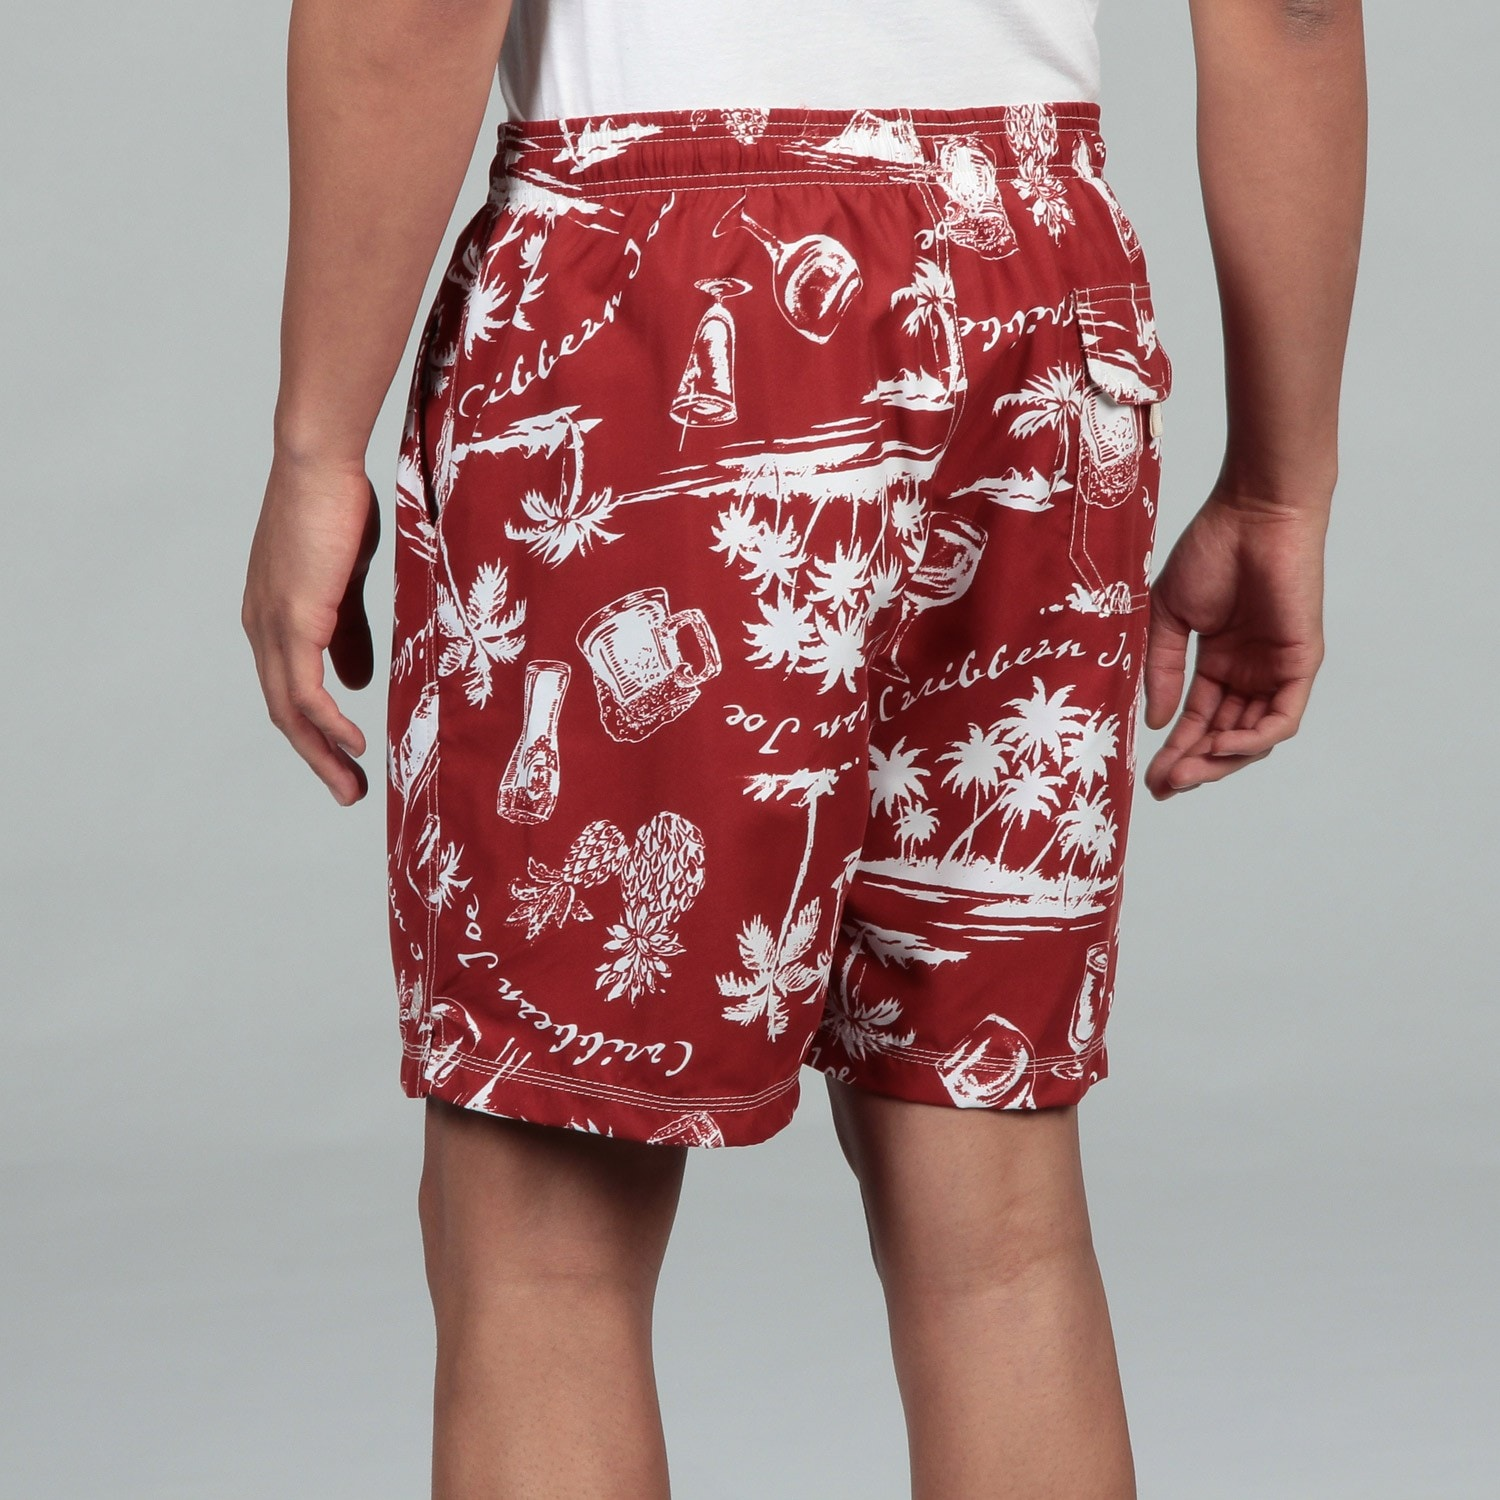 80184f25a8 Shop Caribbean Joe Men's Swim Shorts FINAL SALE - Free Shipping On Orders  Over $45 - Overstock - 6337729